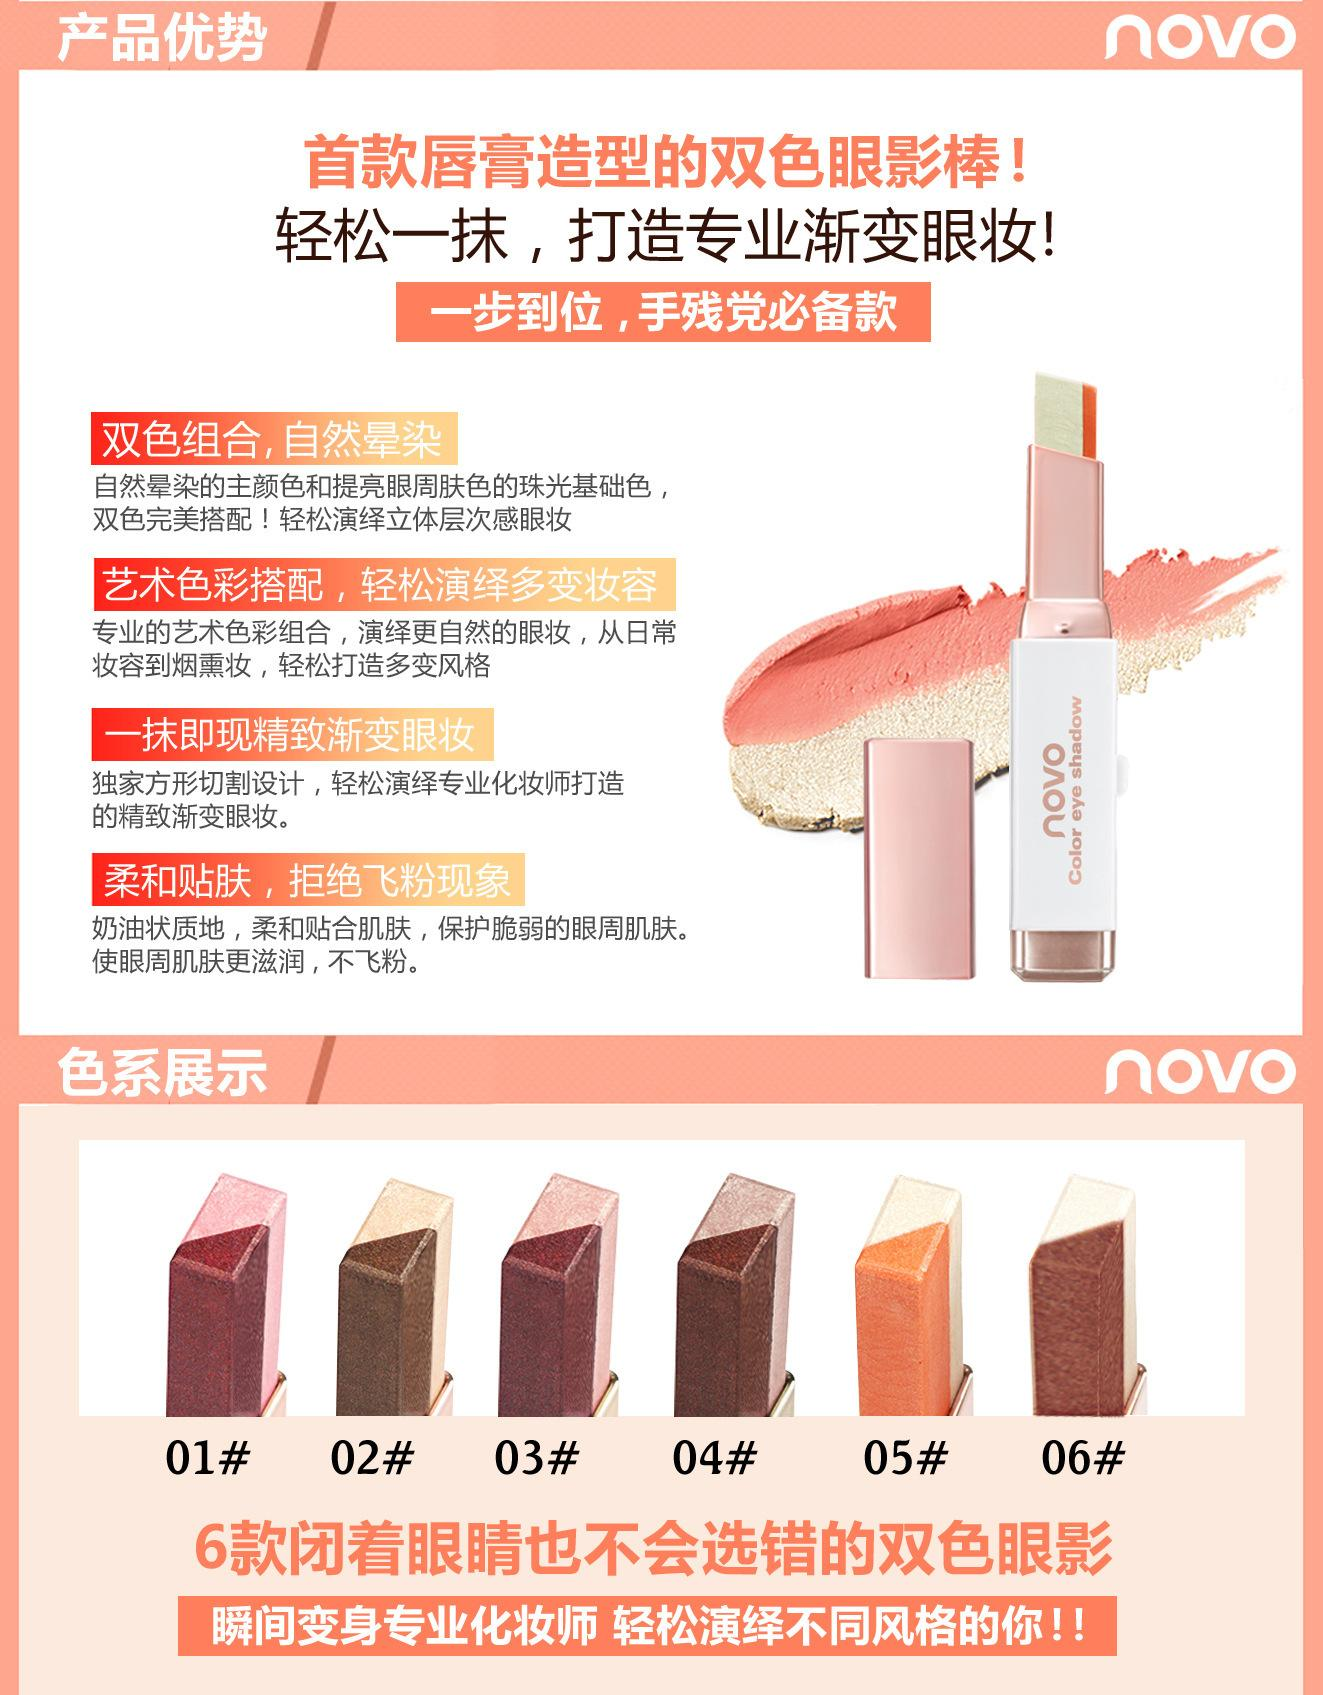 Comparison Of 10 Eye Shadows Reviews Ratings And Best Price In Kl Novo Eyeshadow Two Tone Original Novonovo Double Color Pen Dual Makeup Waterproof